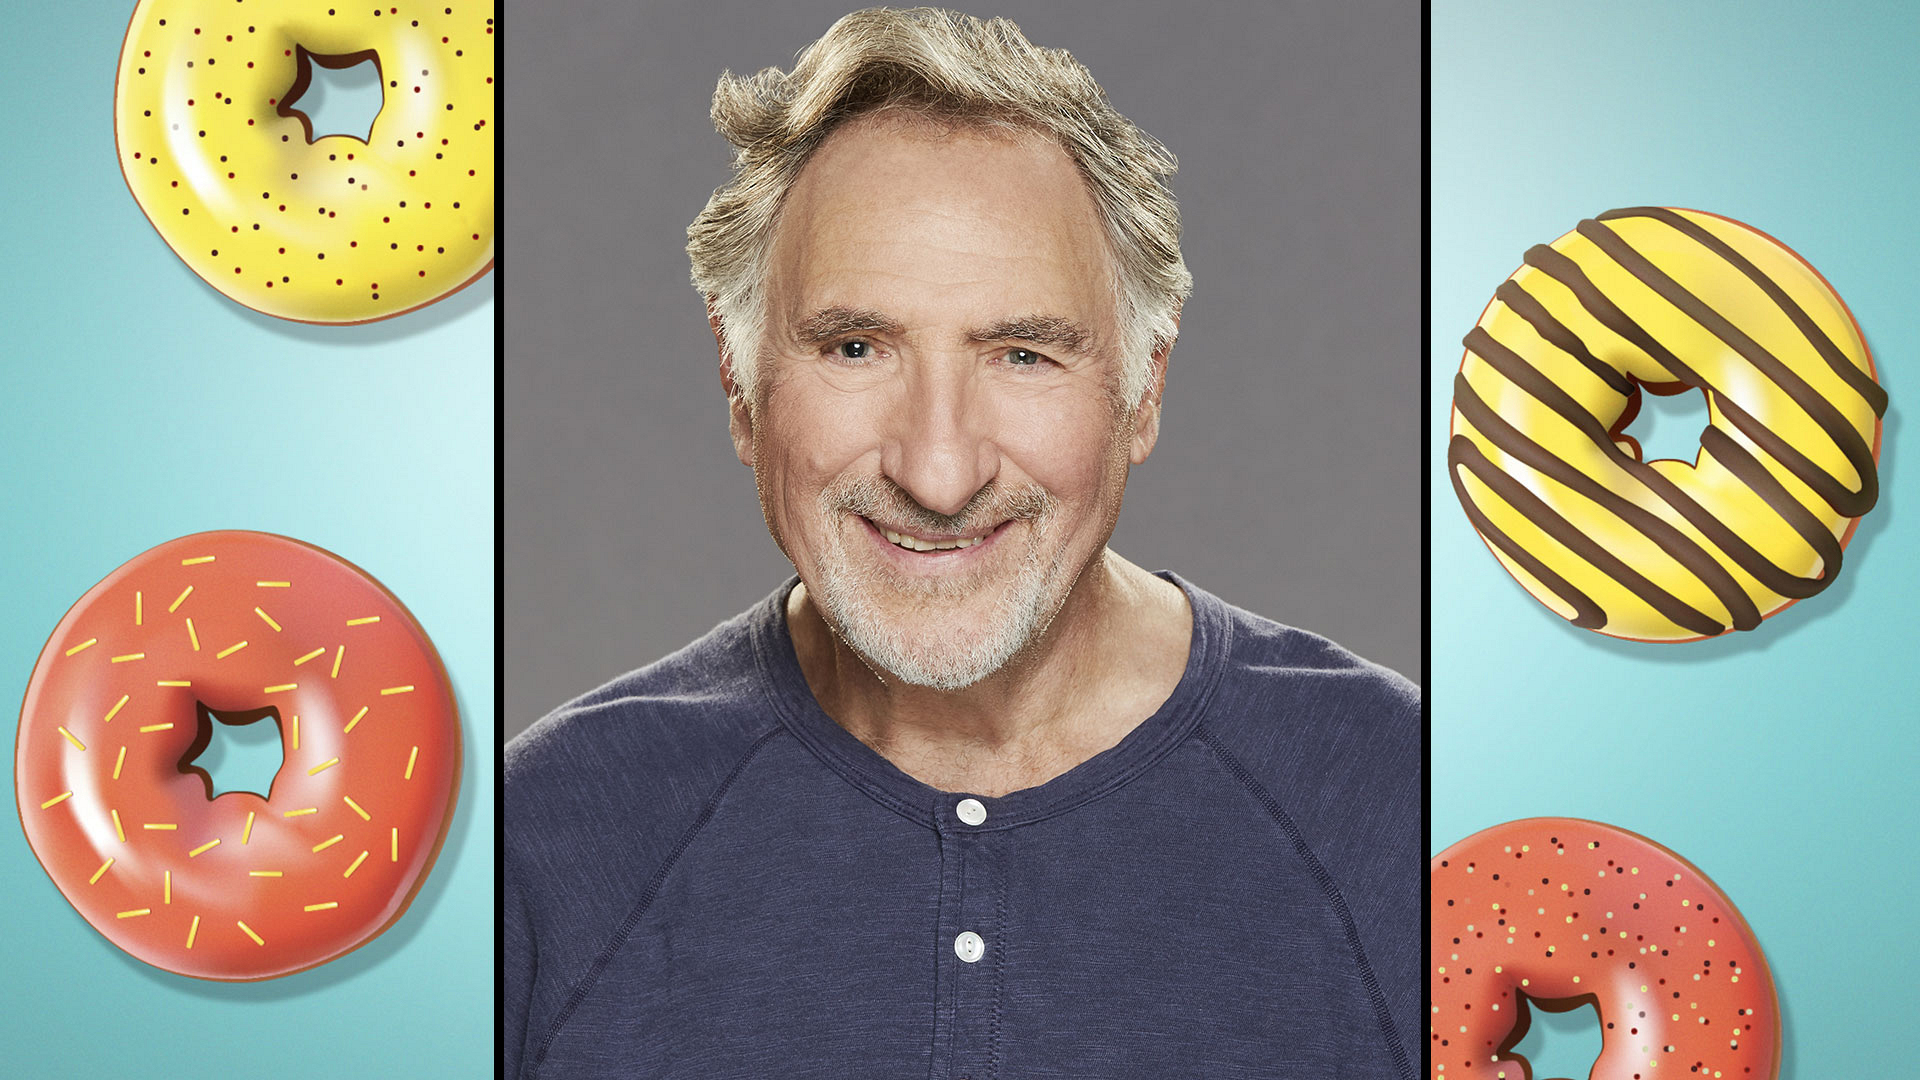 Judd Hirsch, who plays Arthur